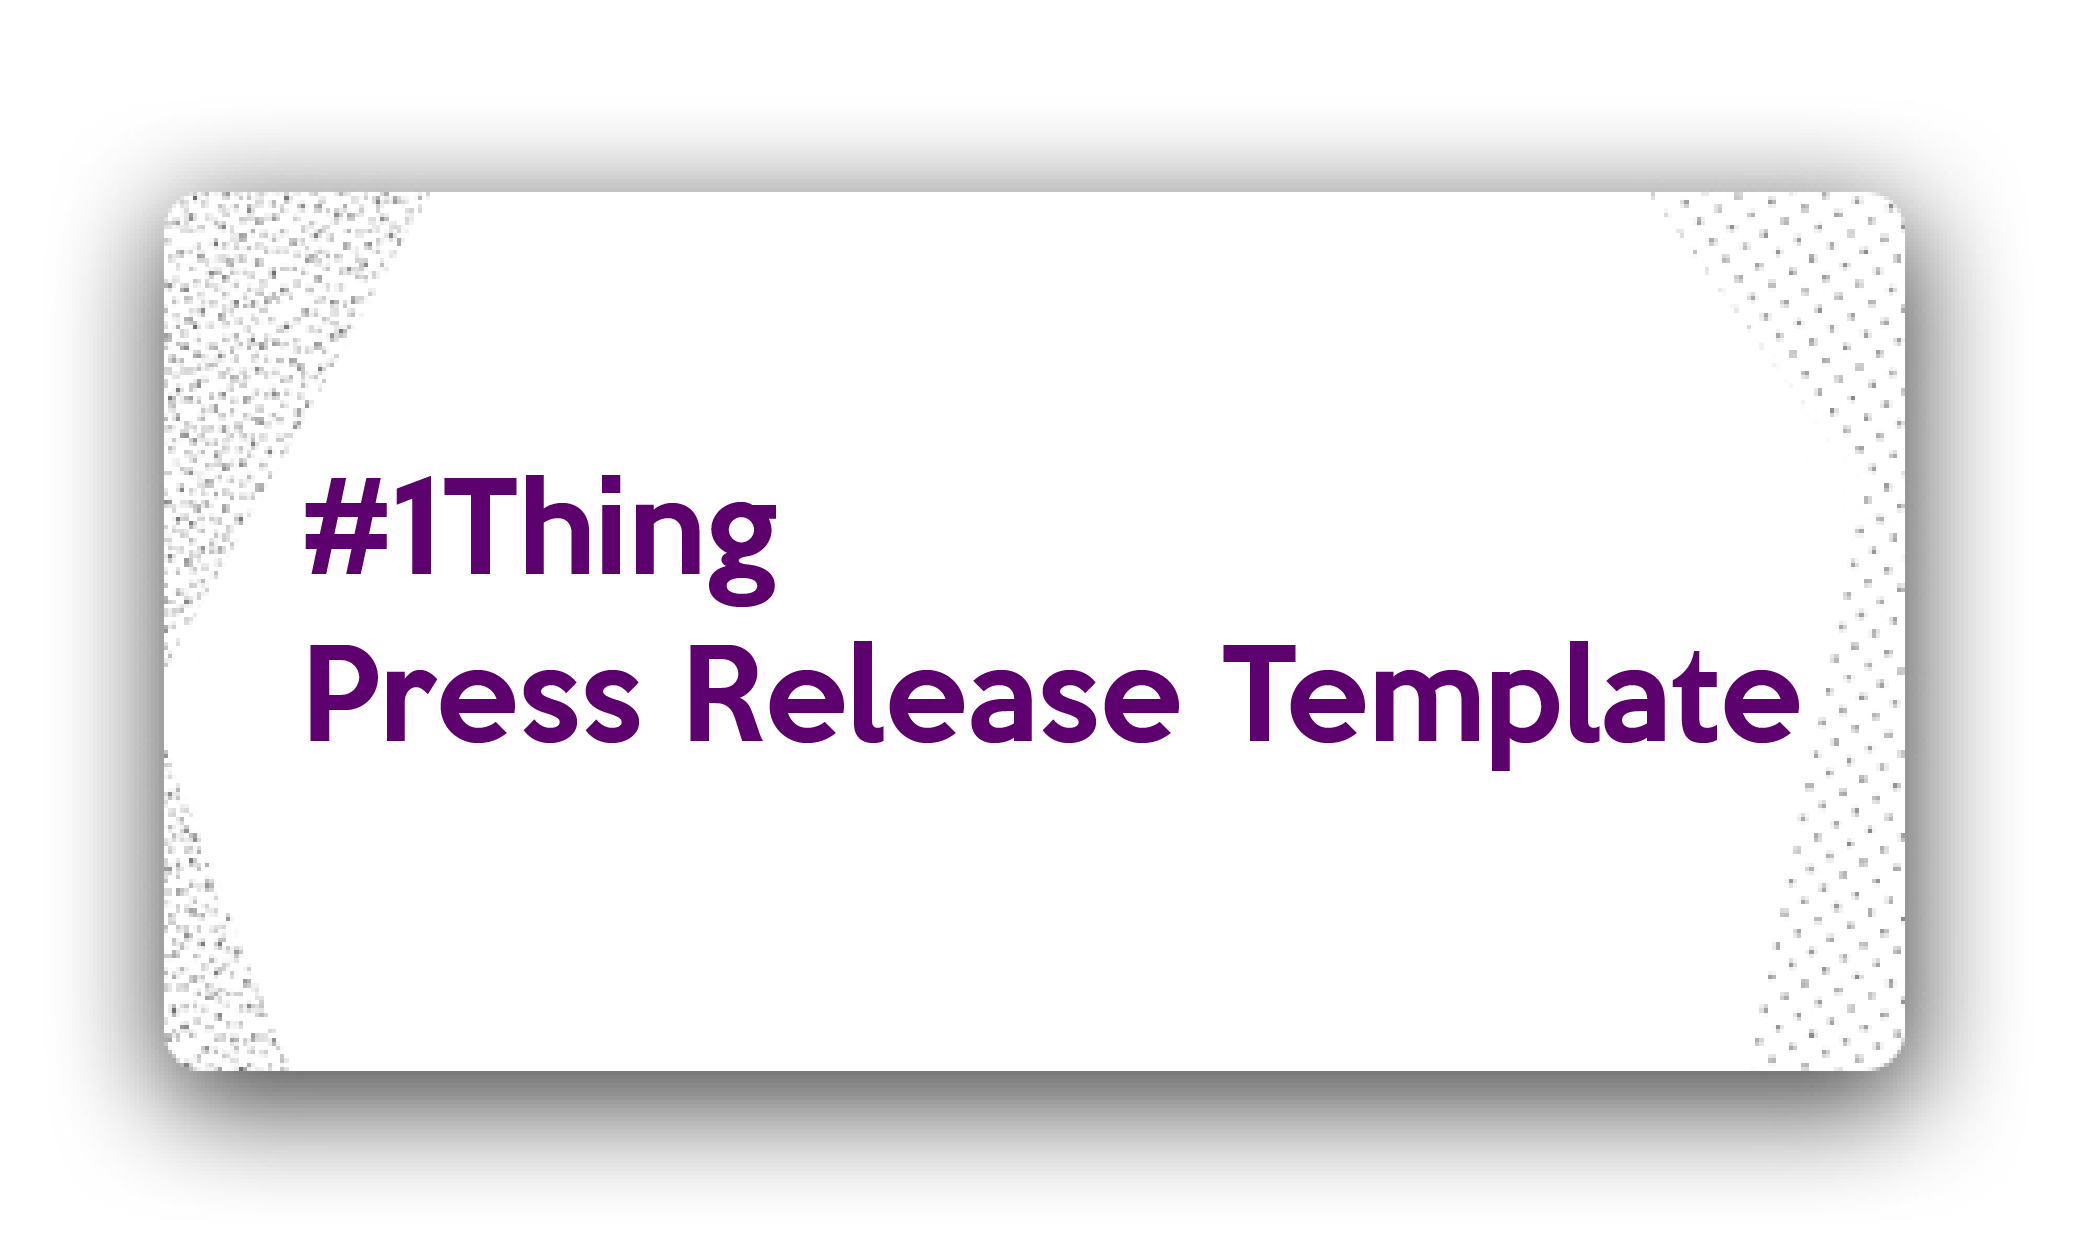 Title: 1 Thing Press Release Template